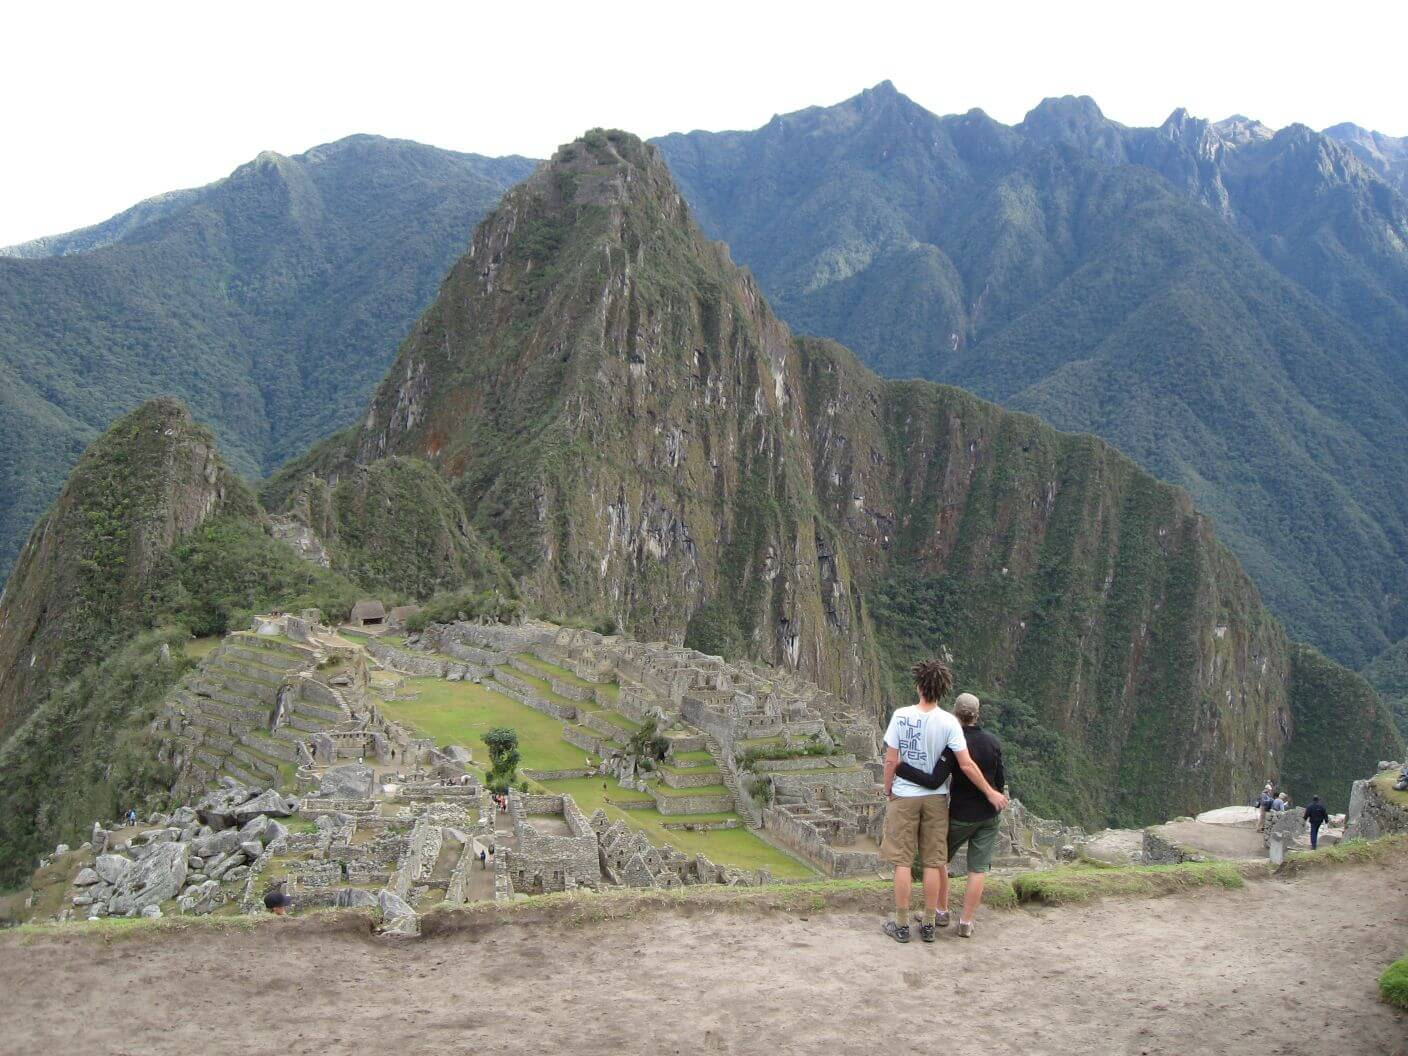 Such a special view - Ross and Amber looking down onto Machu Picchu